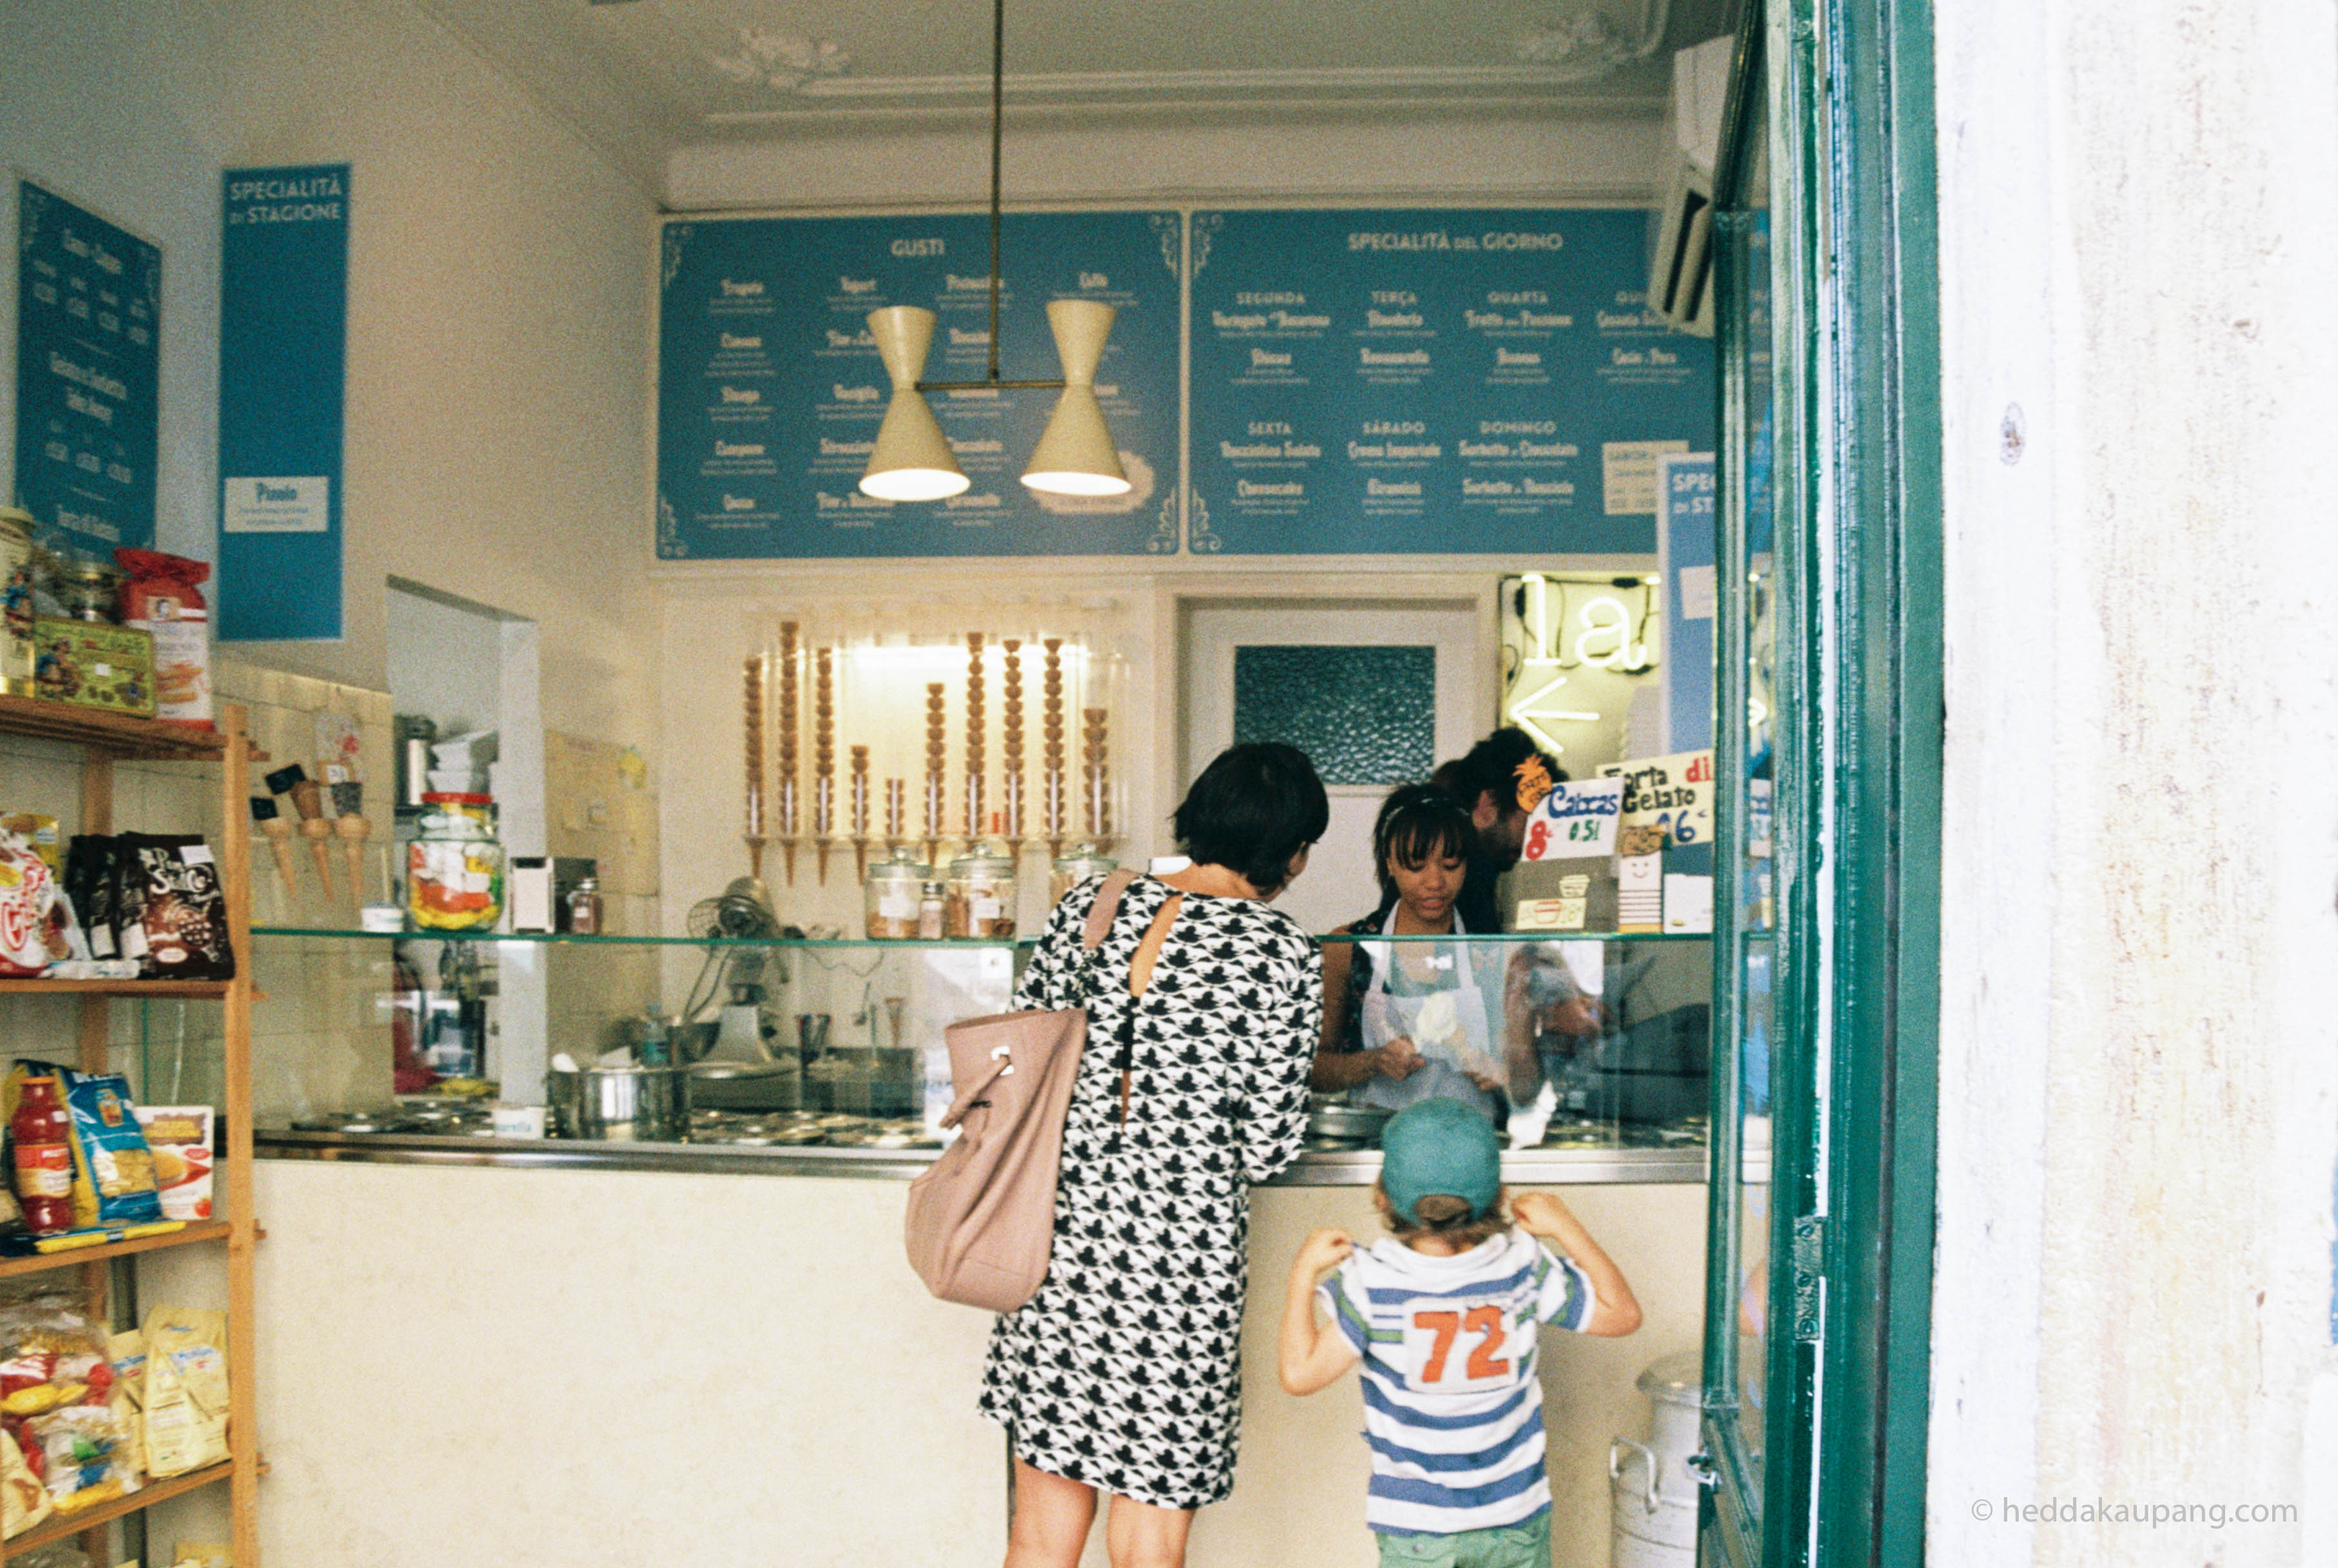 Nannarella Gelateria in Lisbon